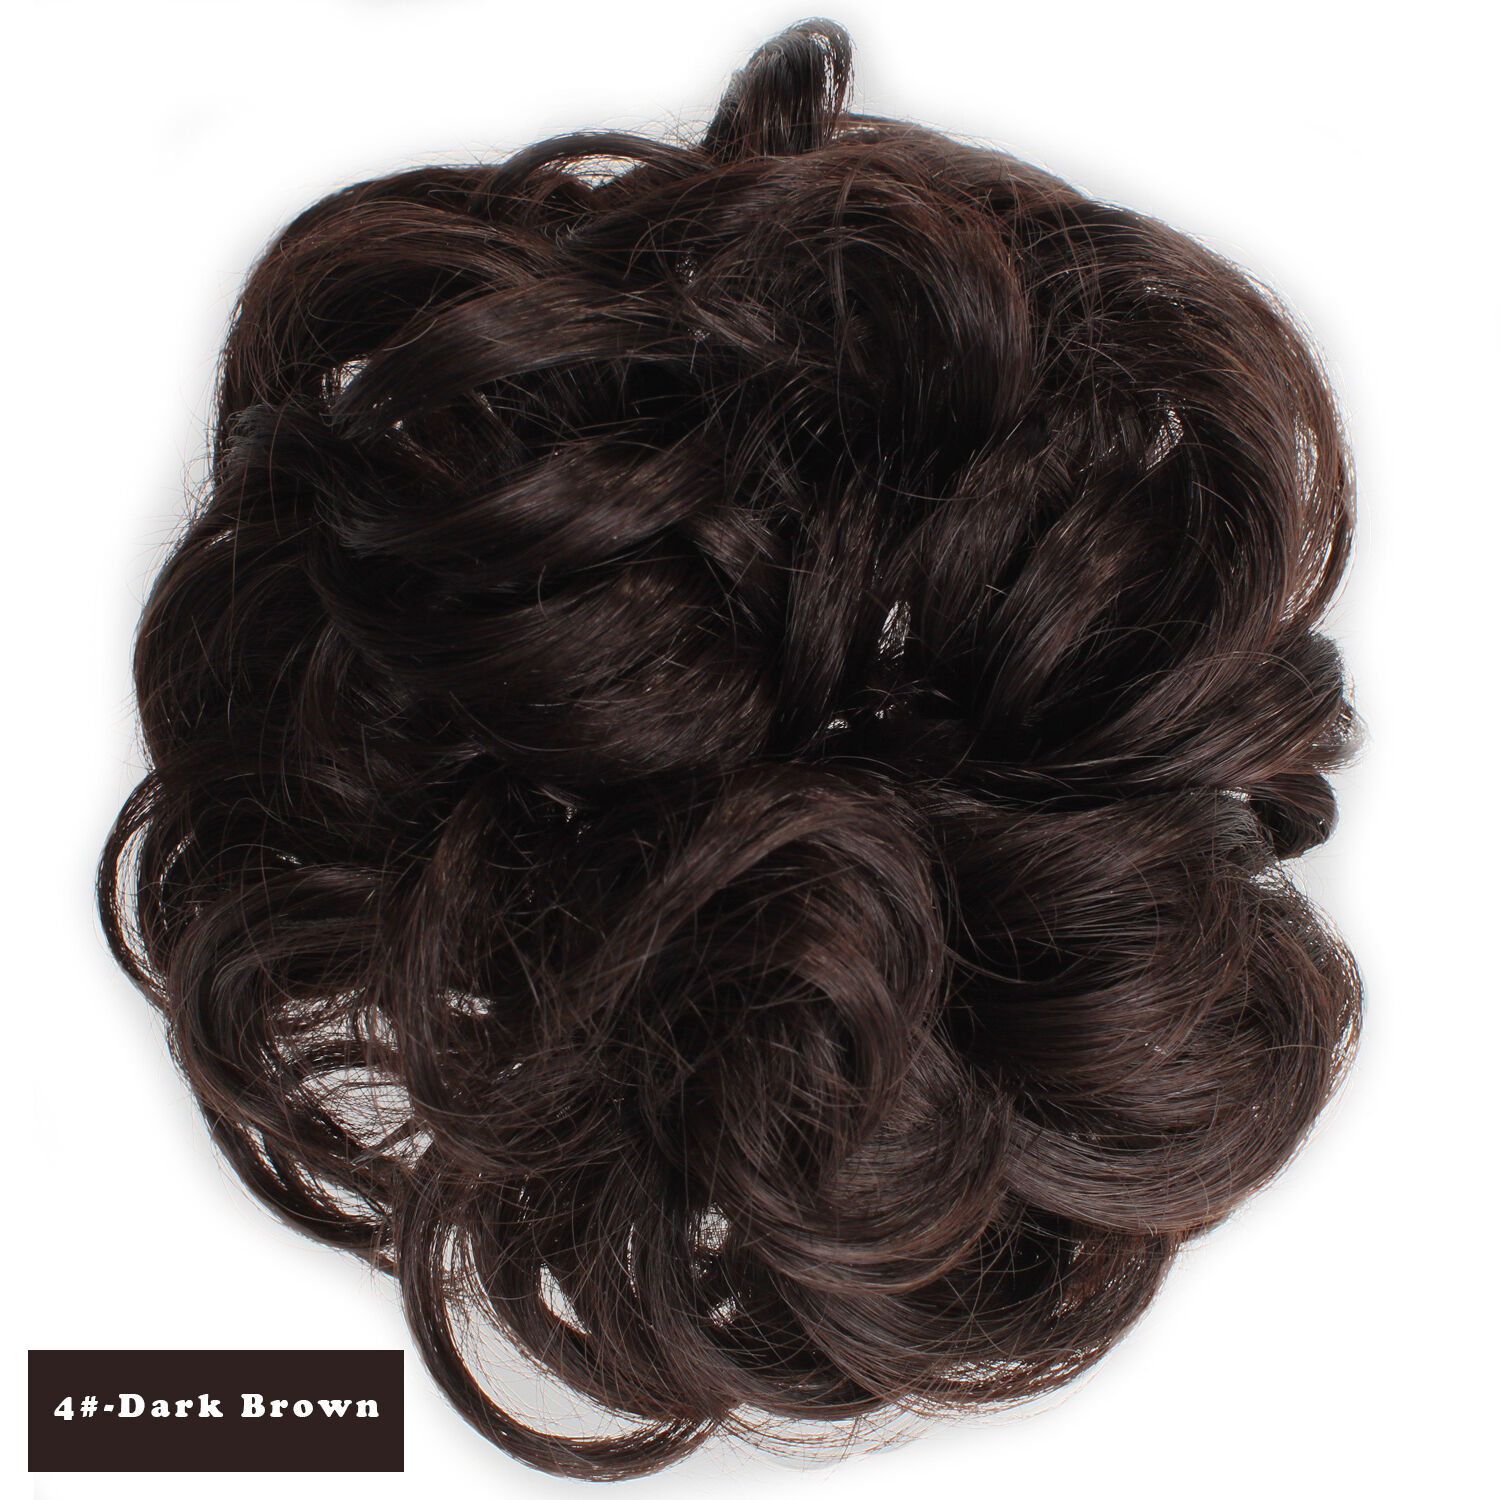 Onedor Ladies Synthetic Wavy Curly Or Messy Dish Hair Bun Extension